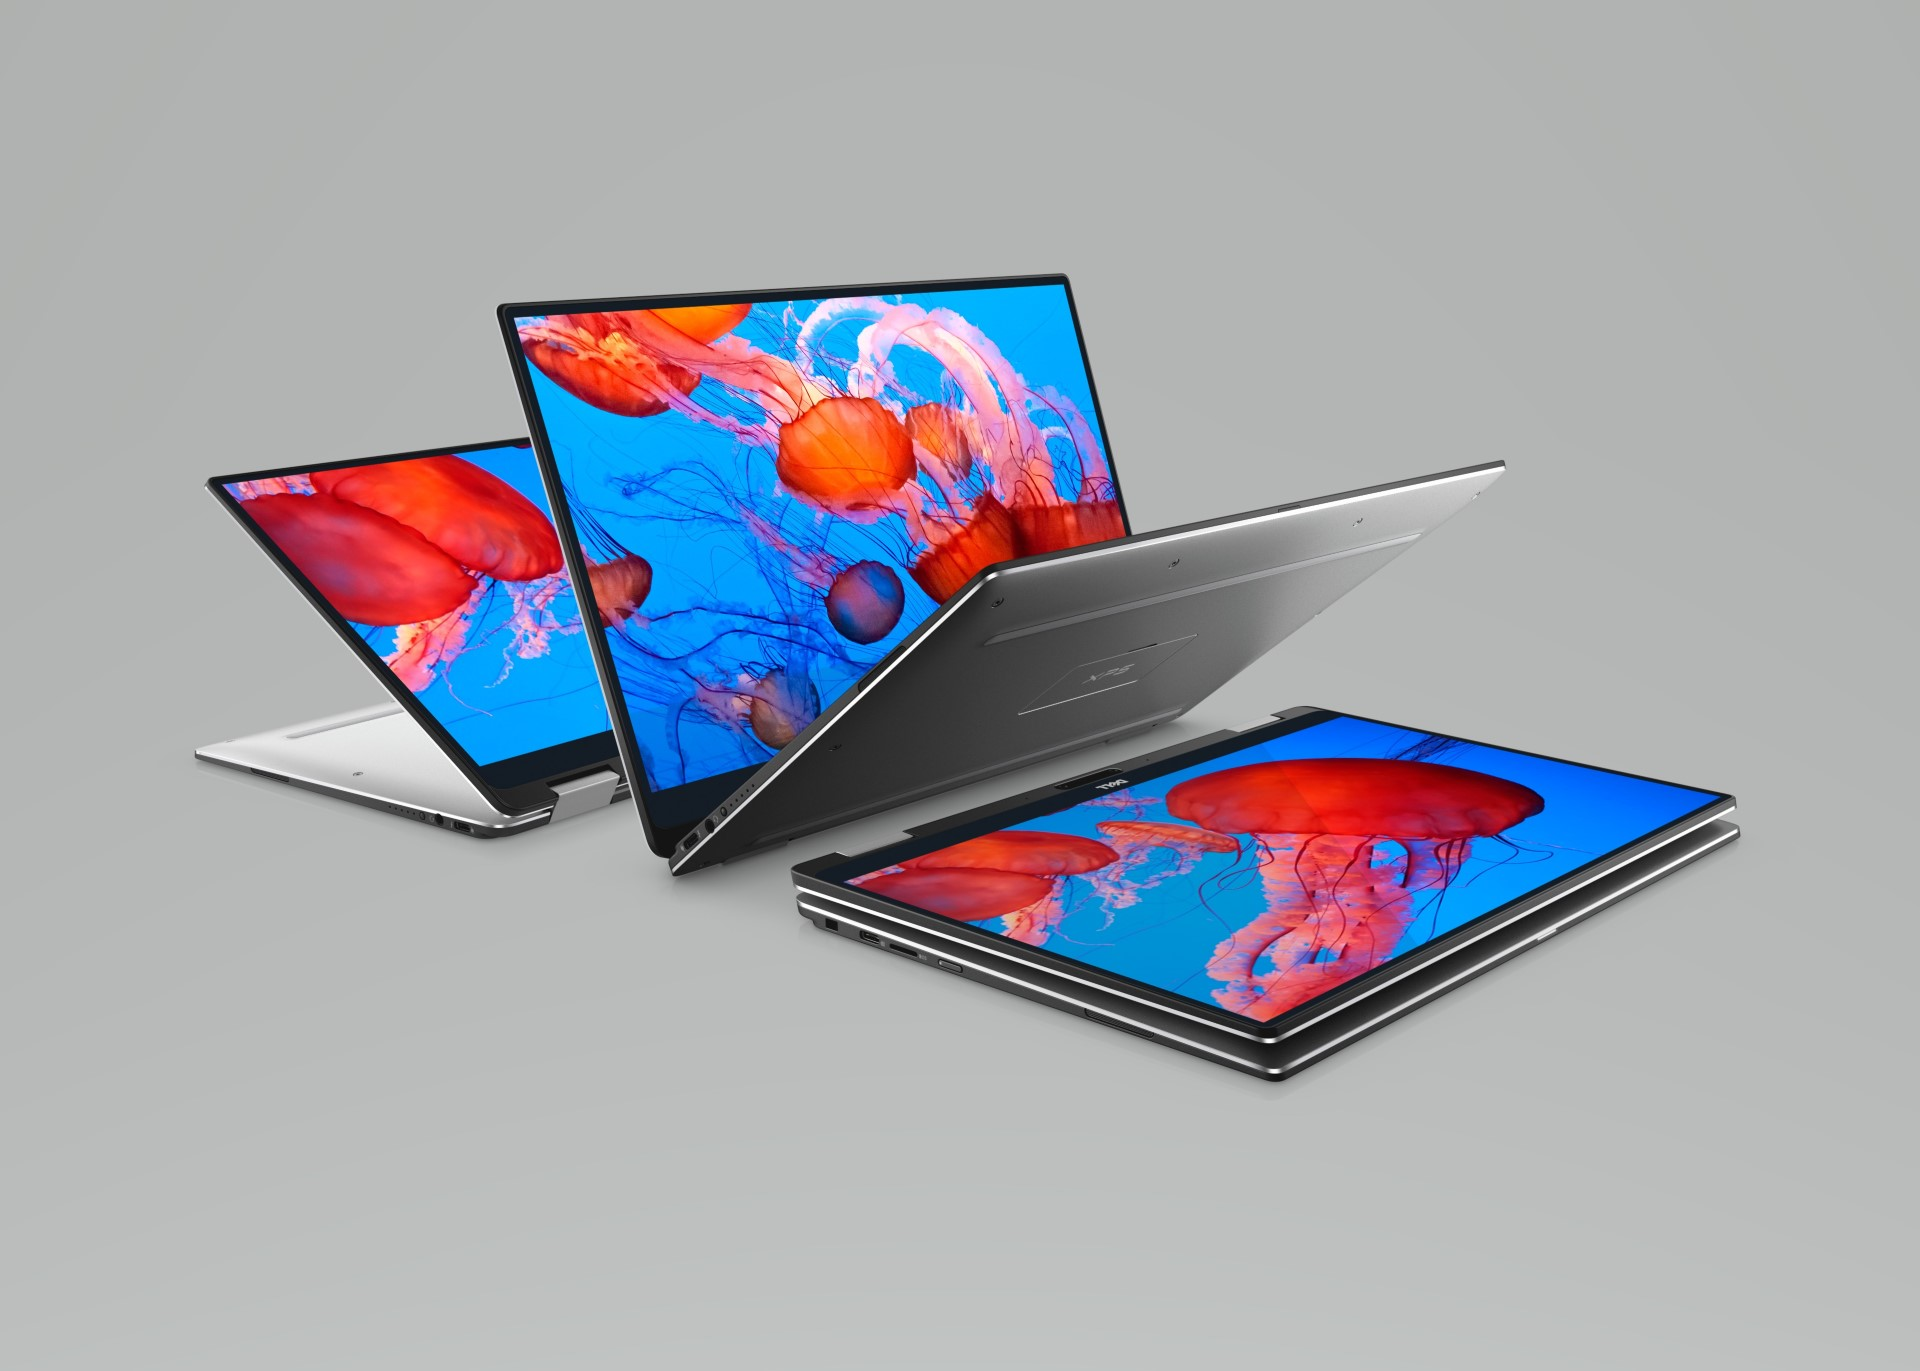 Dell XPS IFA 2018